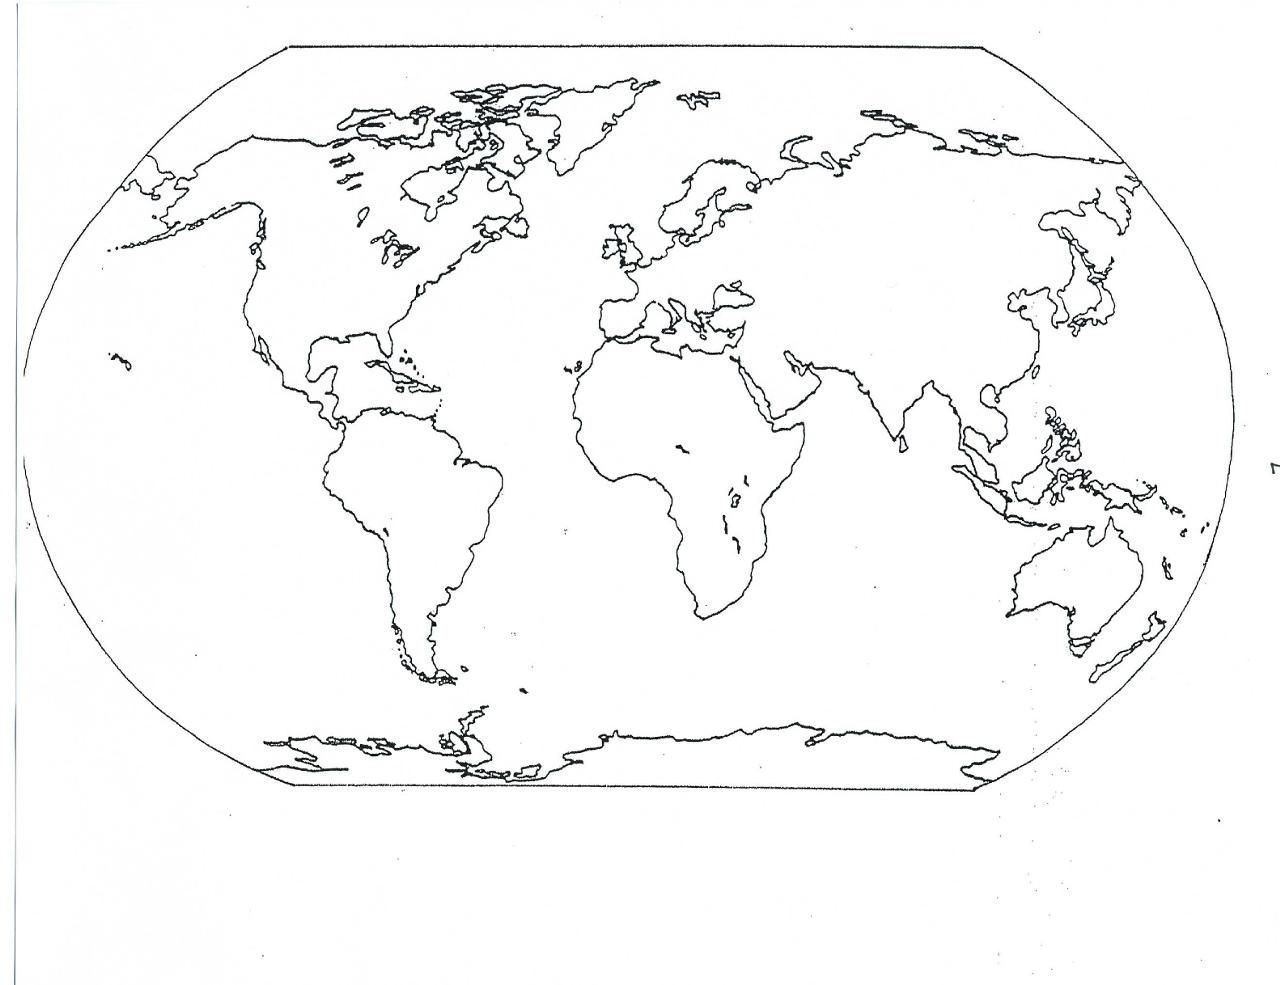 Get The Latest Free World Map Coloring Page Images Favorite Pages To Print Online By ONLY COLORING PAGES